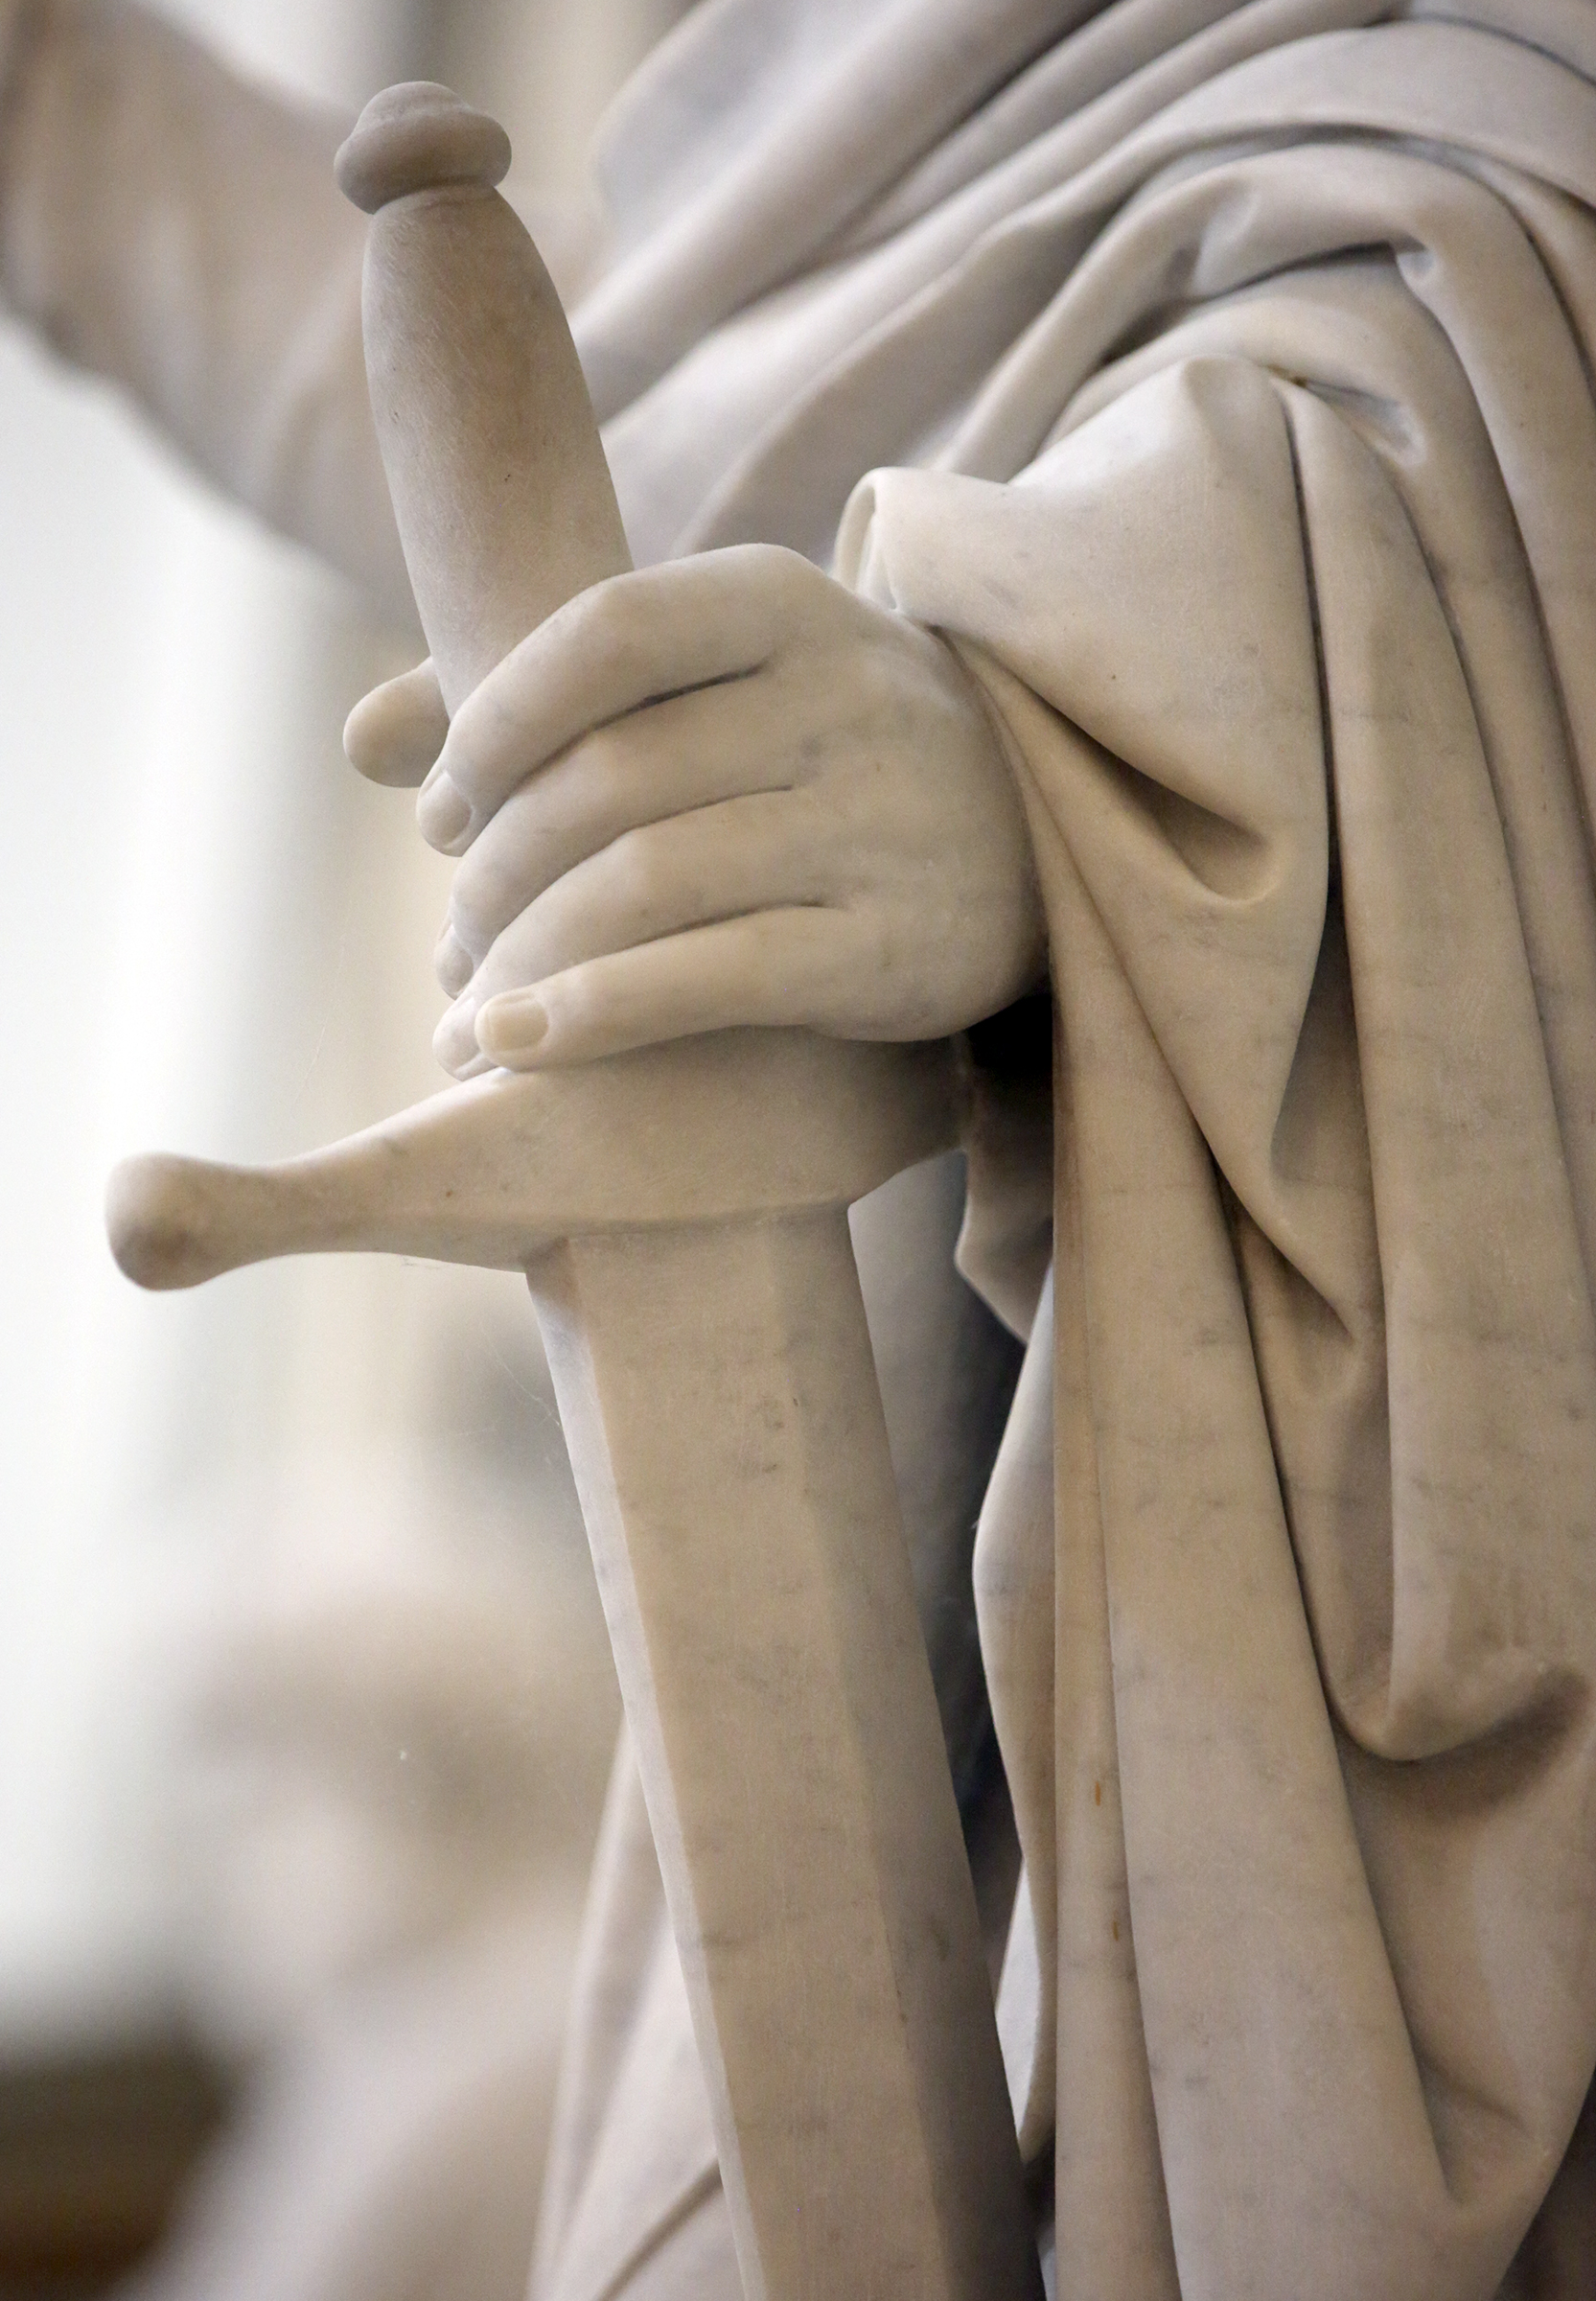 Bertel Thorvaldsen's statue of Paul, one of the 12 apostles, holds a sword at the Church of Our Lady in Copenhagen, Denmark, on Tuesday, Nov. 13, 2018. The 12 apostles statues were carved out of Carrara marble between 1829 and 1848. Replicas of the statues are now on display in the Rome Temple Visitors' Center in Italy.